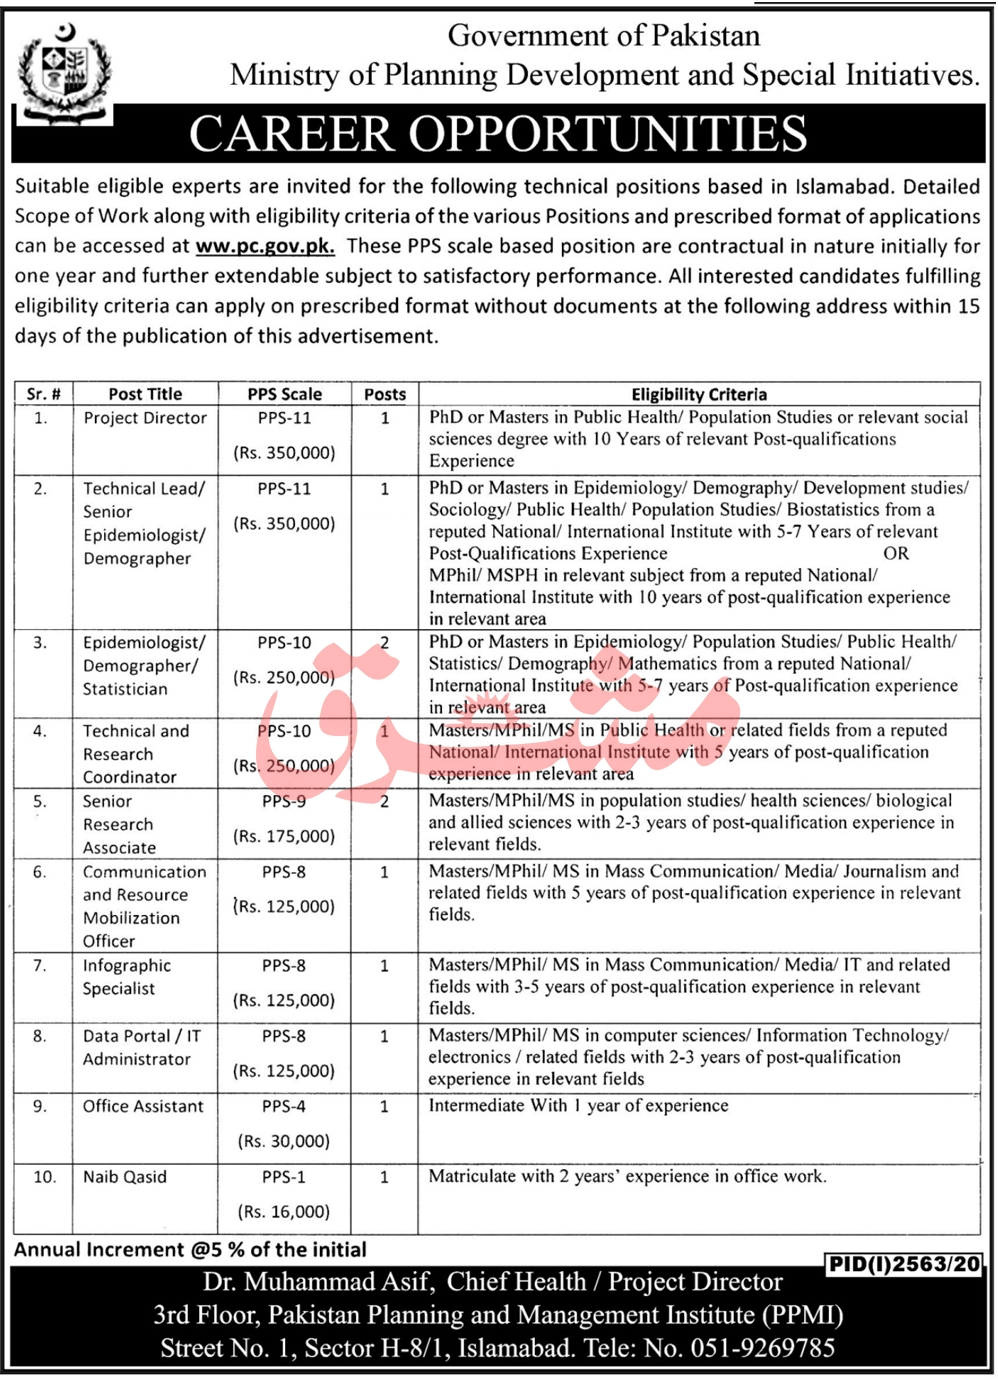 Government of Pakistan Ministry of Planning Development and Special Initiatives Jobs November 2020